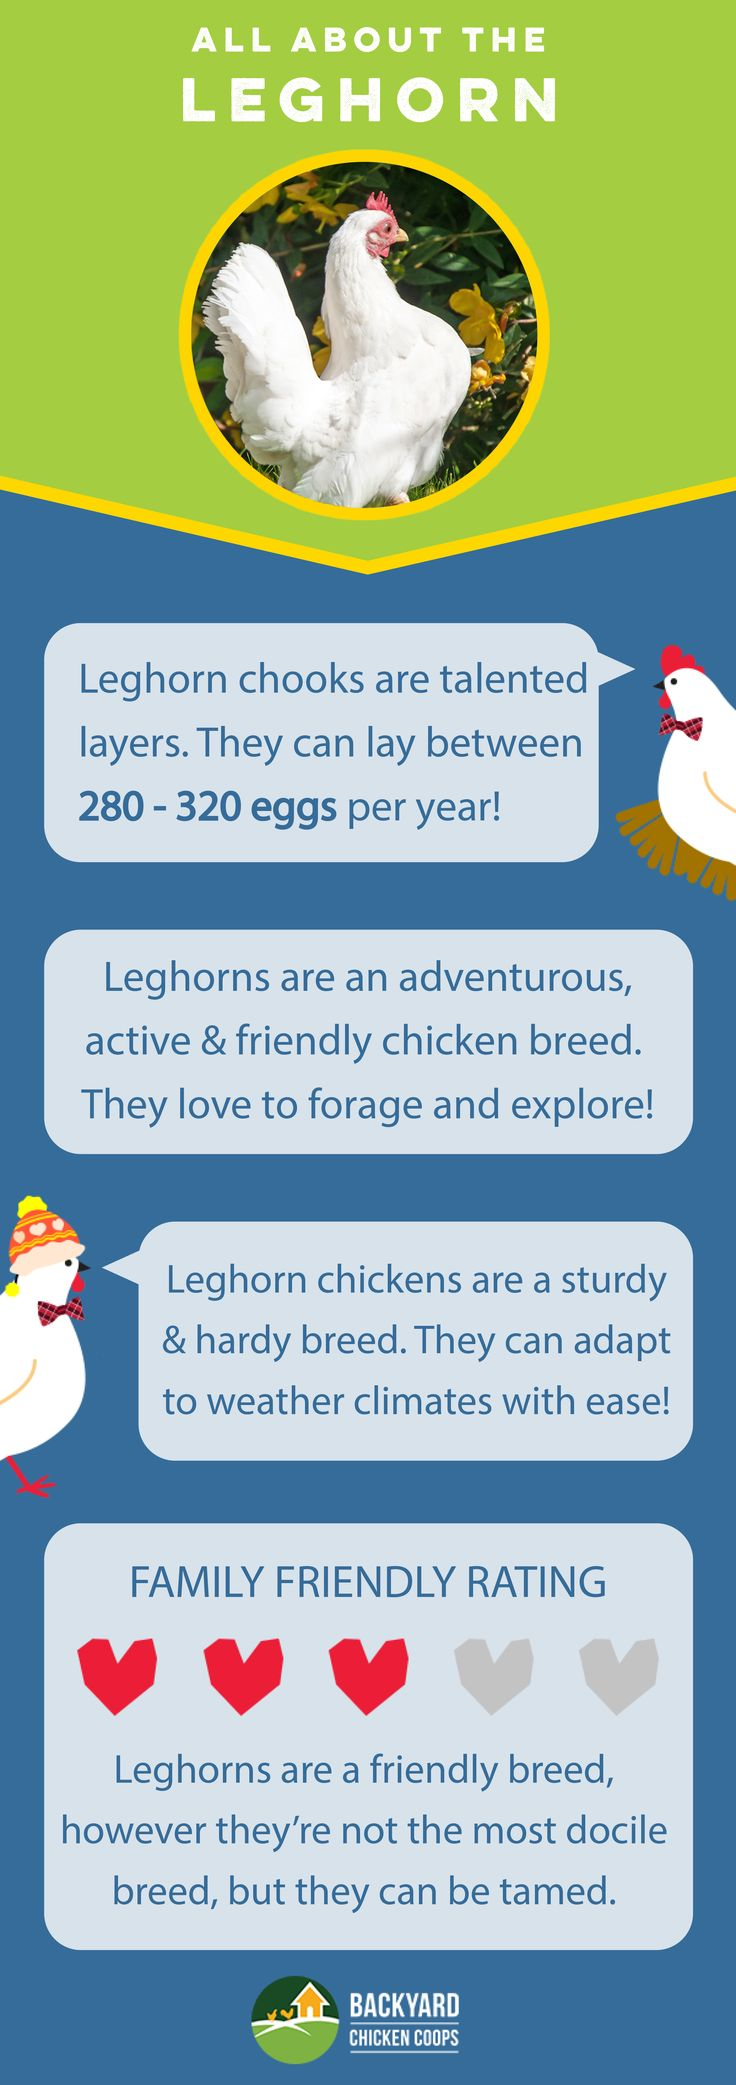 Leghorn chickens are an overall awesome backyard breed! They are egg-ceptionally great layers, have active and energetic personalities and are hardy chooks. Check out their breed profile here, http://www.backyardchickencoops.com.au/breed-profile-leghorn/ #loveyourchickens #inforgraphic #leghornchickens